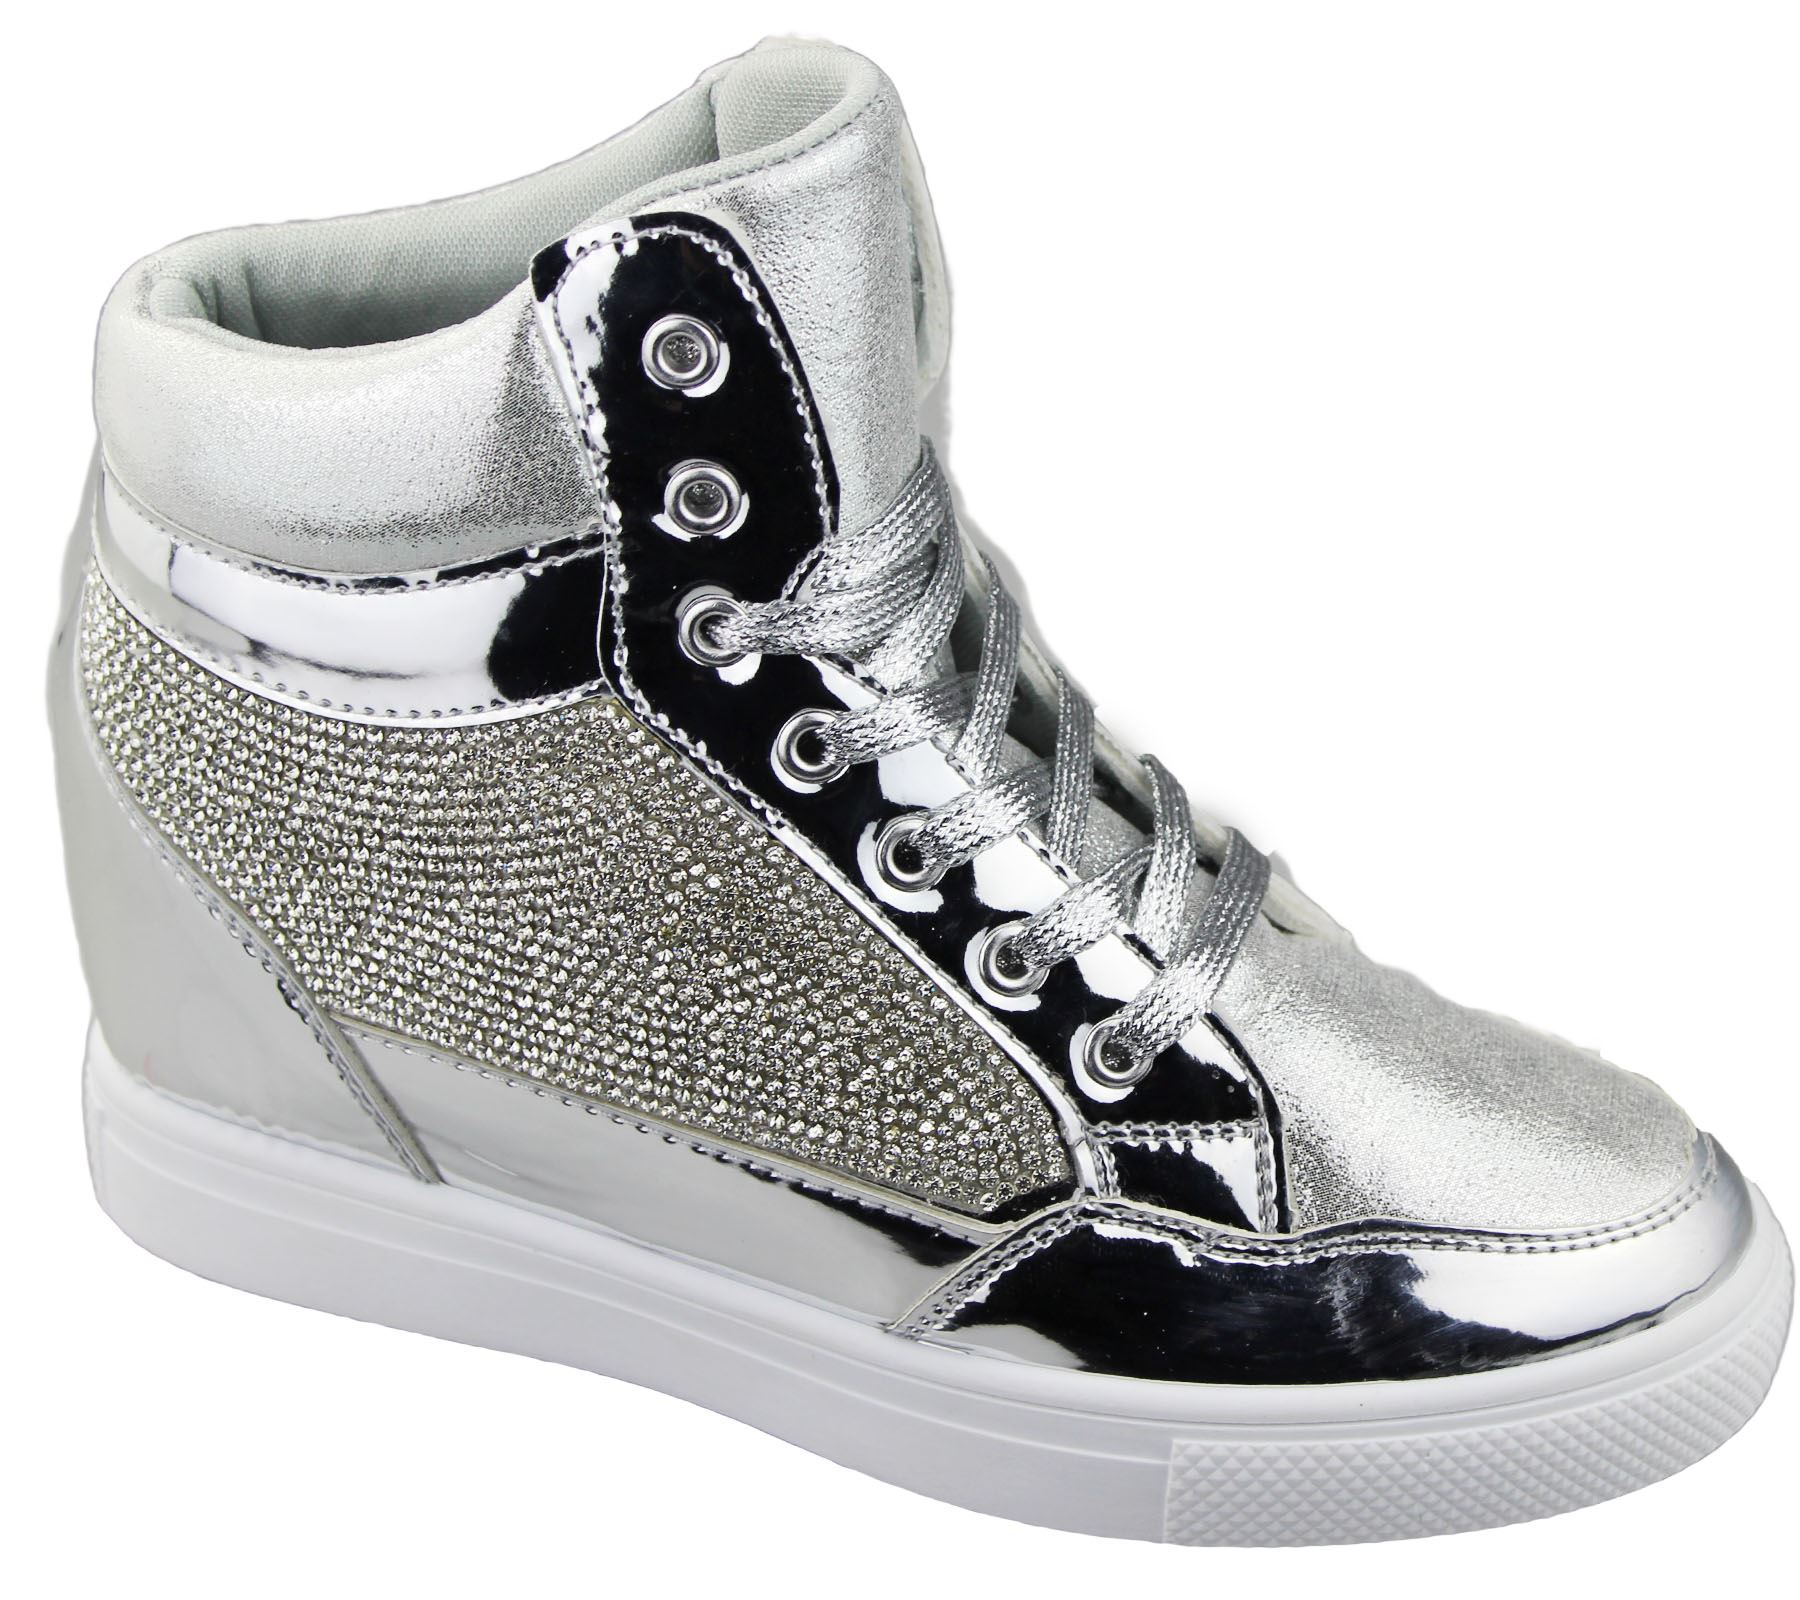 womens wedge heel high top ankle boot ladies diamante summer shoes